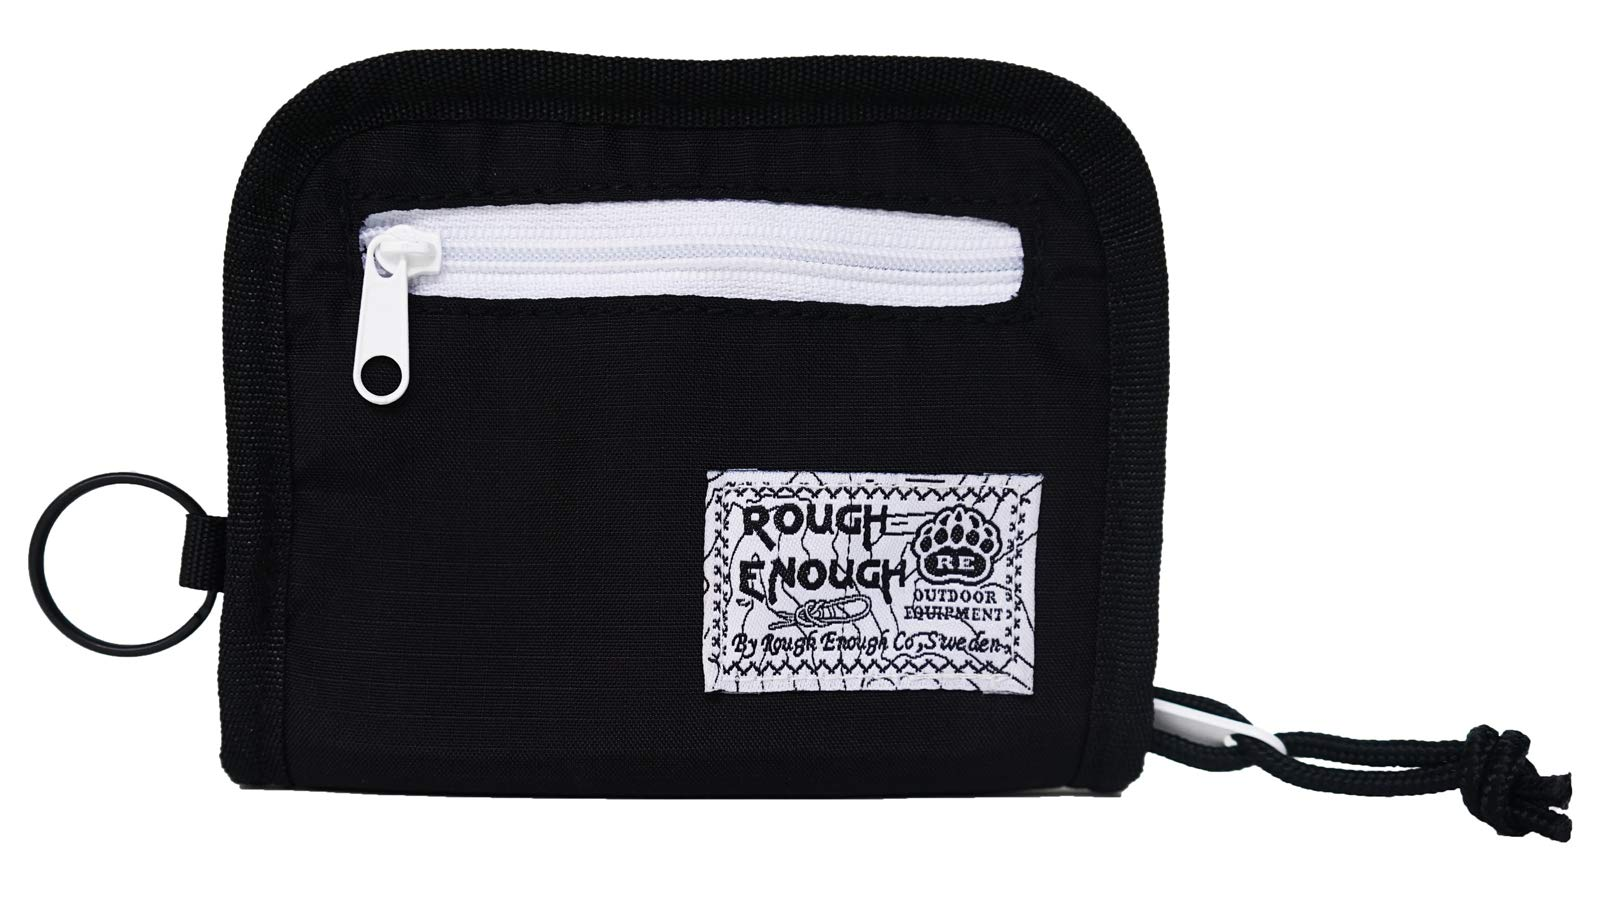 Rough Enough Cute Minimalist Travel Credit Card Zipper Wallets Holder Purse Bag Money Cash Coin Case Pouch Organizer with Detachable Neck Strap Lanyard and Key Ring for Boy Girl Women Men Sport School by RE ROUGH ENOUGH